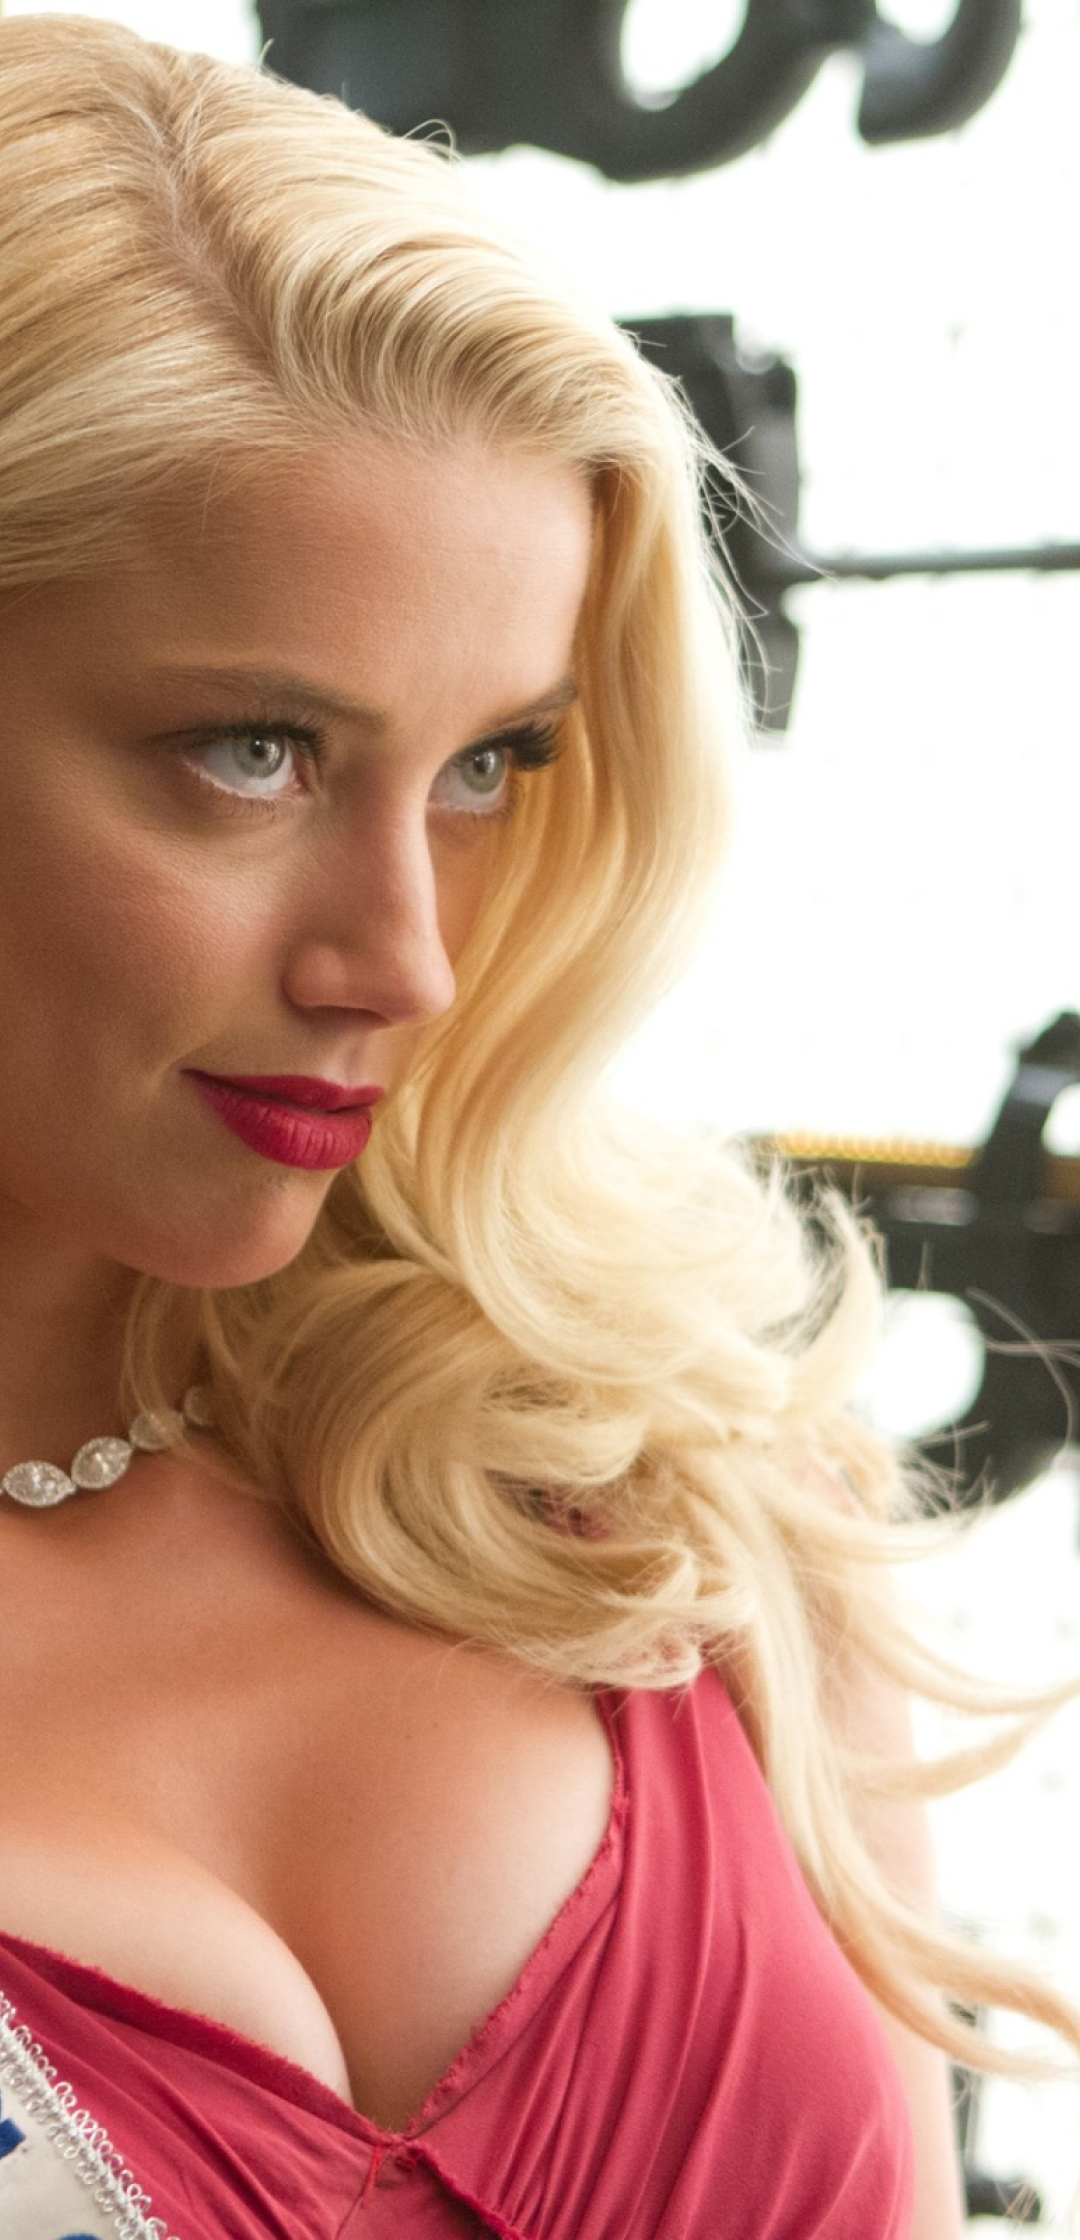 Amber Heard Gorgeous Hd Photo Collection Wallpaper, HD